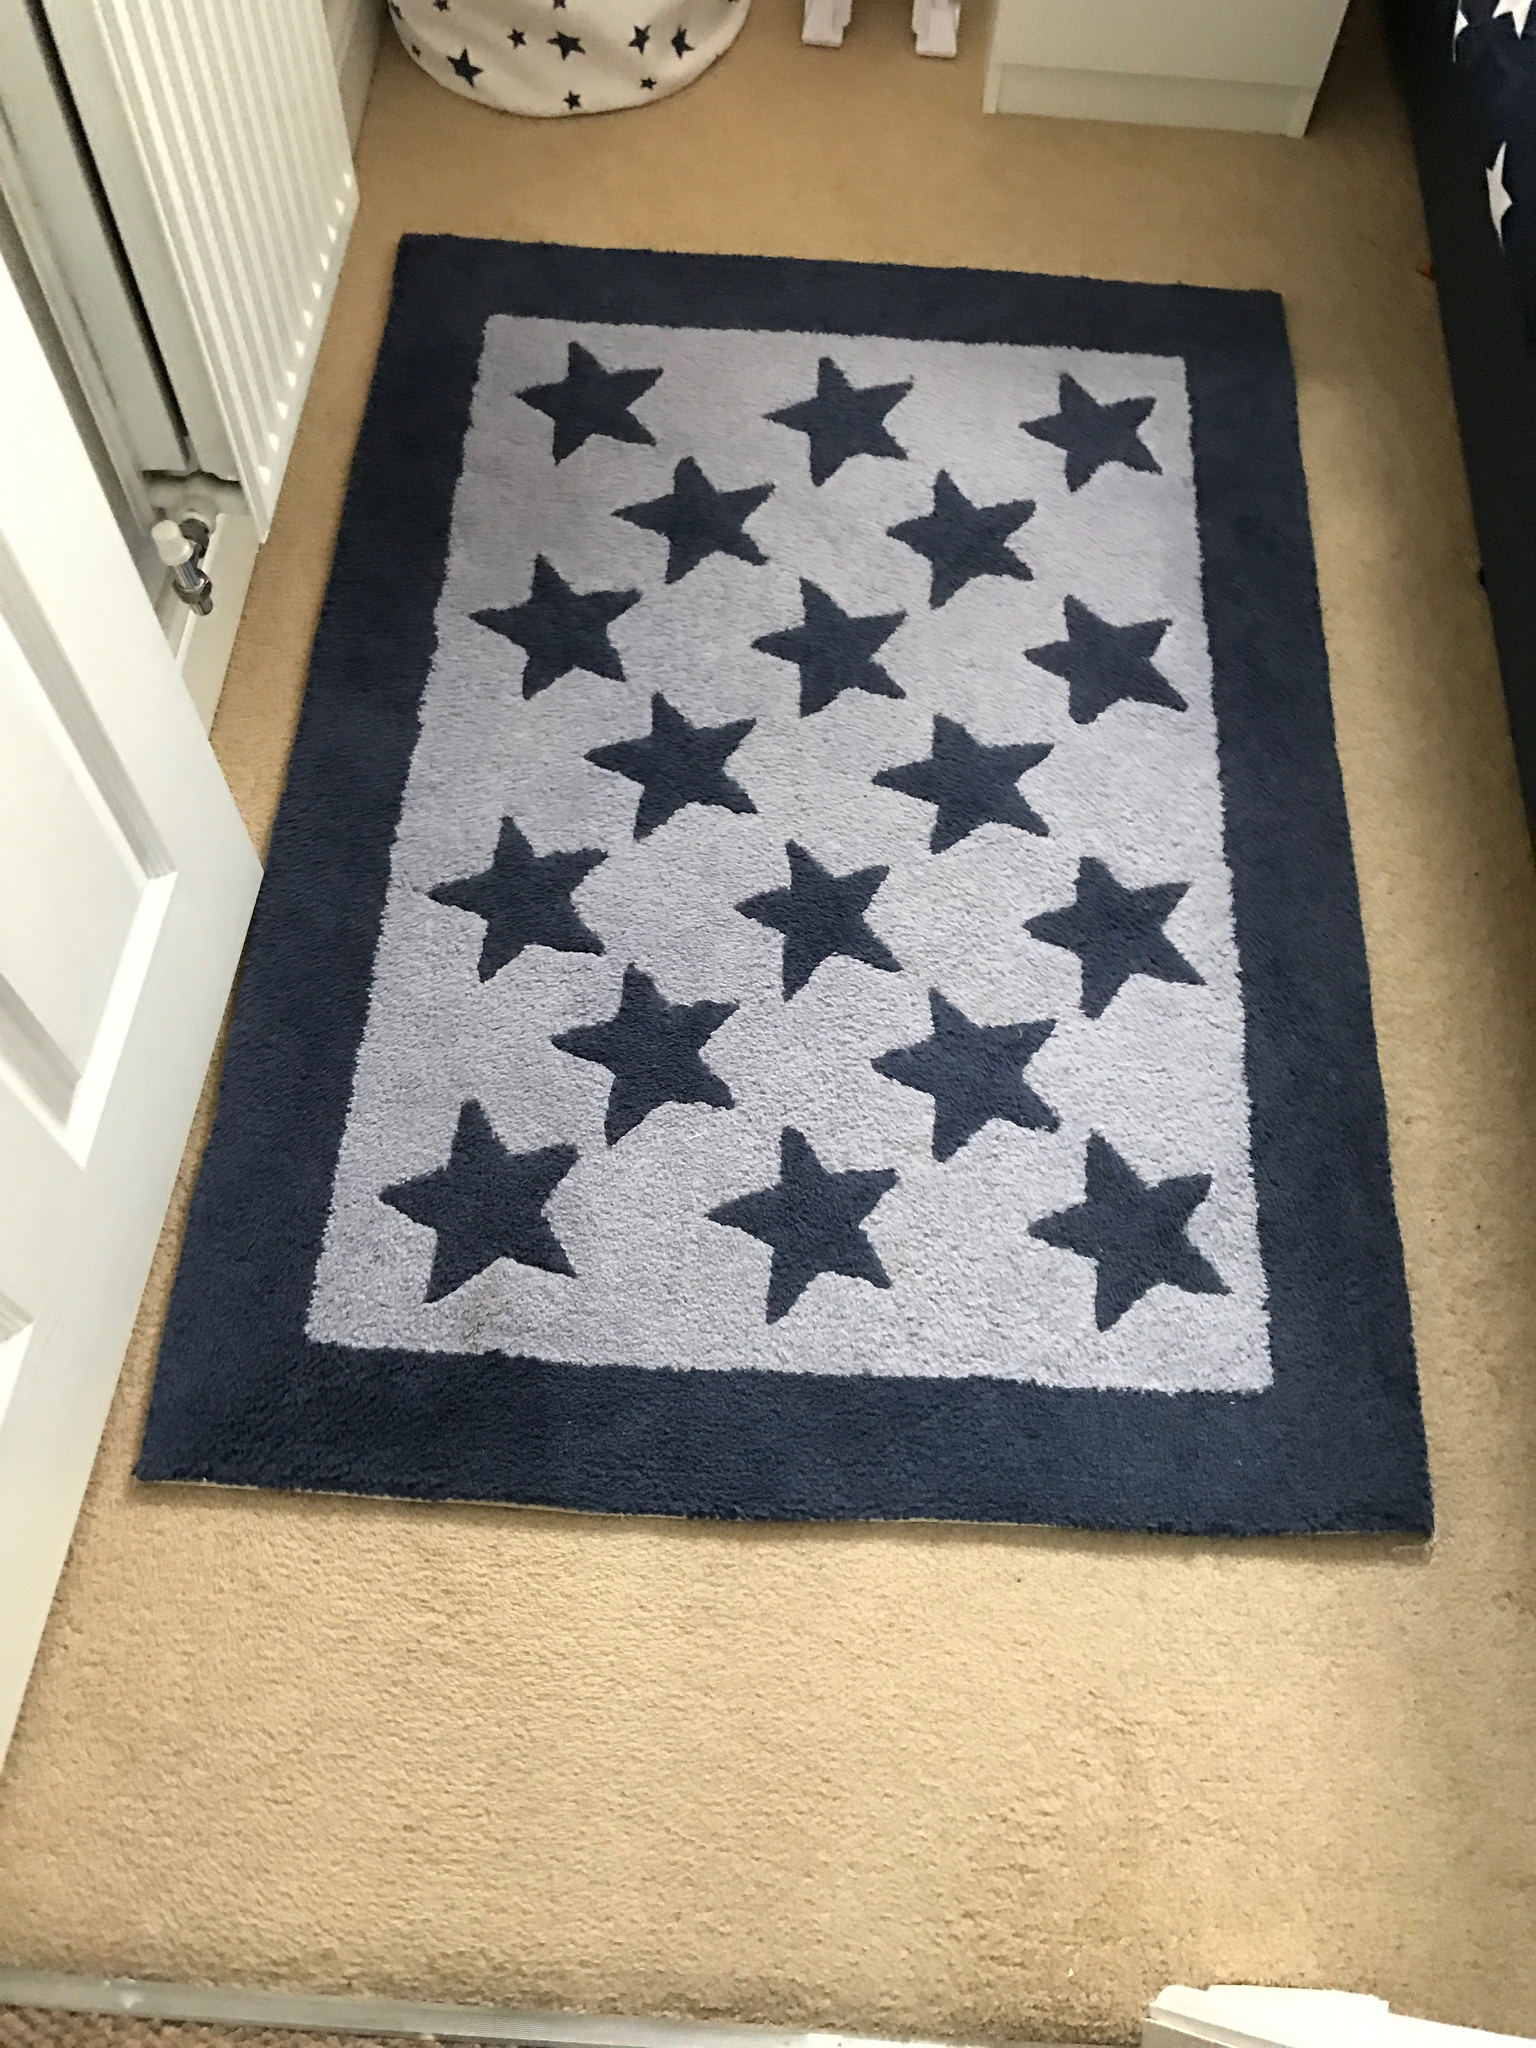 Star rug for space themed bedroom